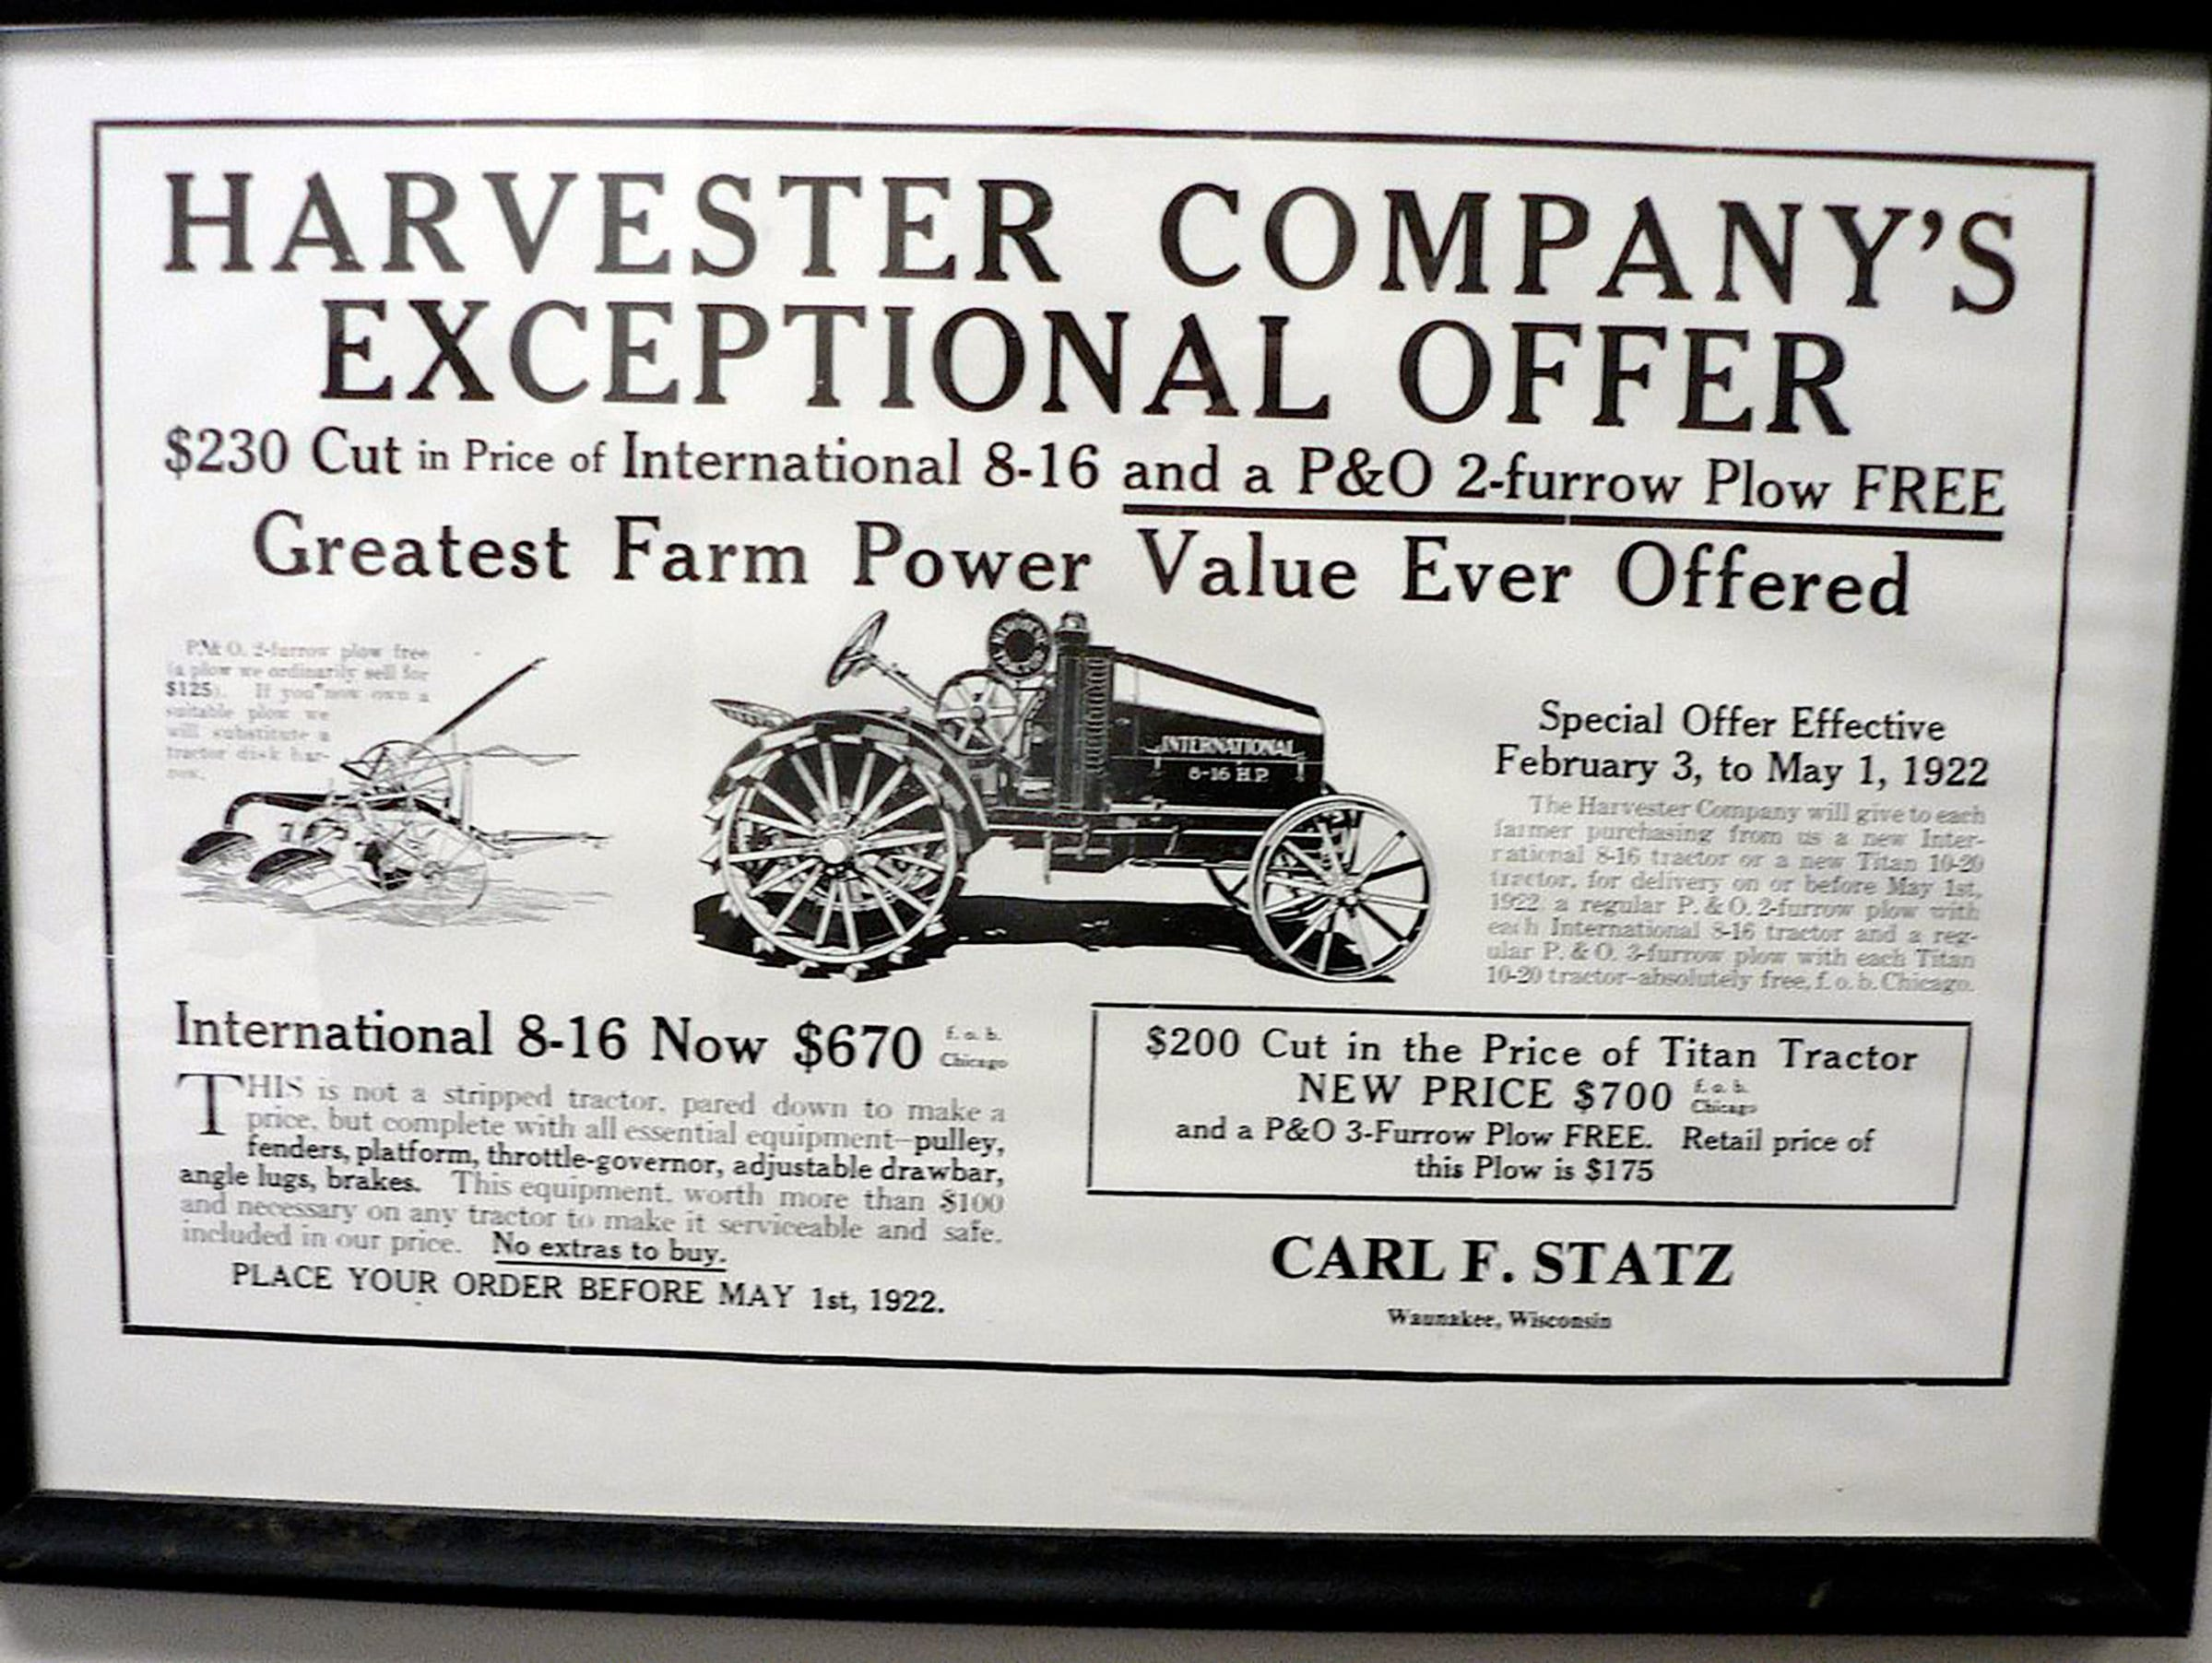 An International 8-16 from 1922 at $670.